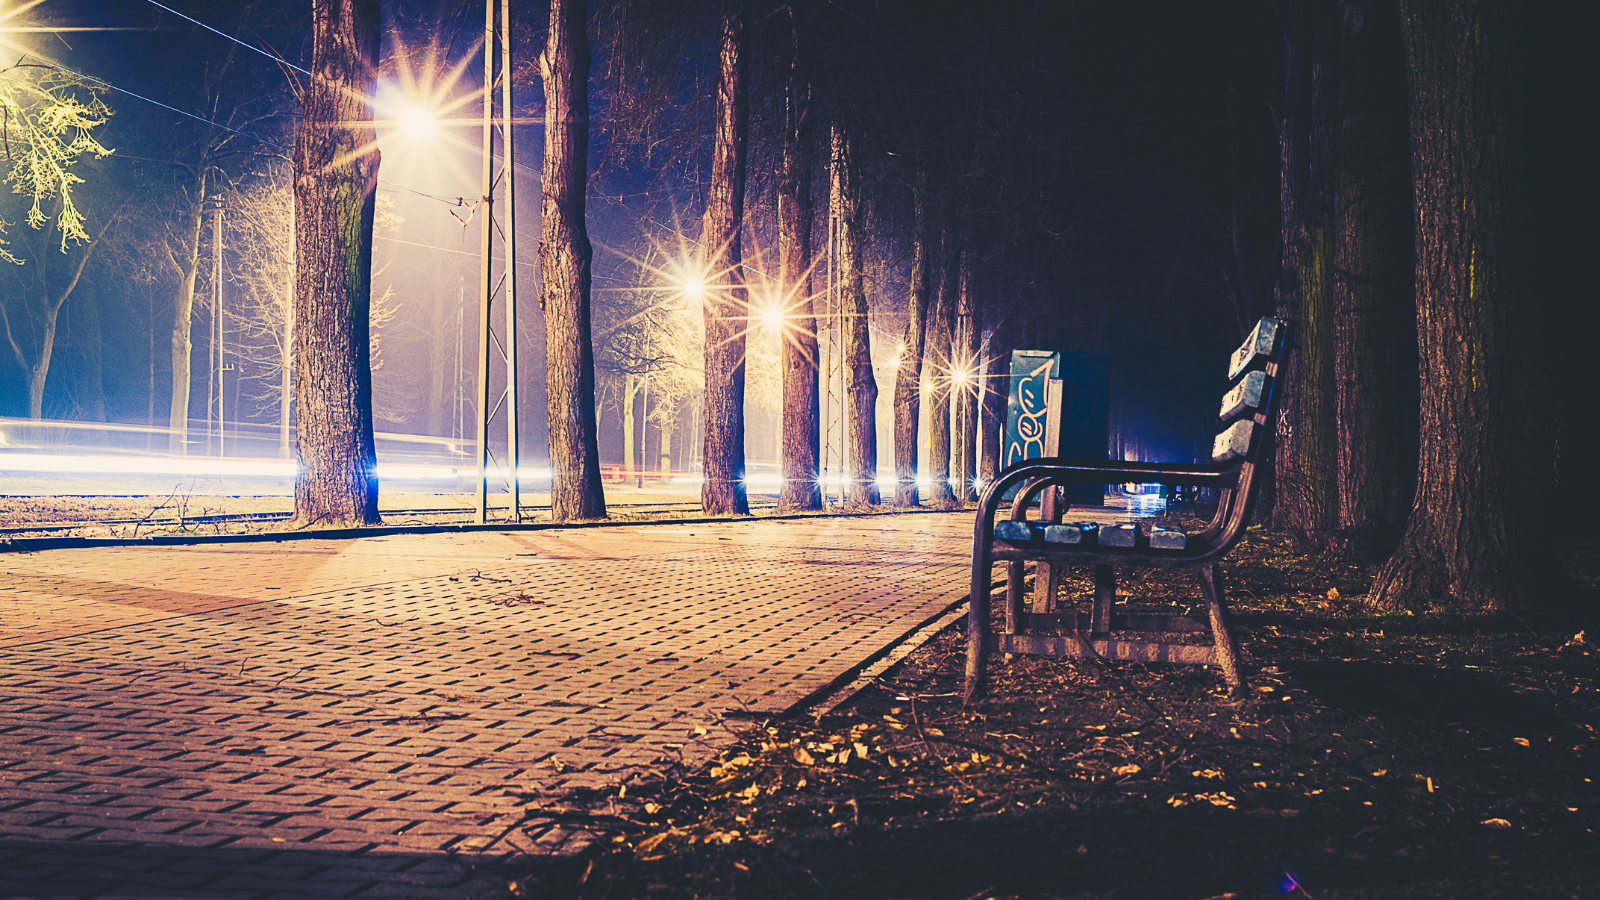 The value of smart public lighting for improving the life of citizens